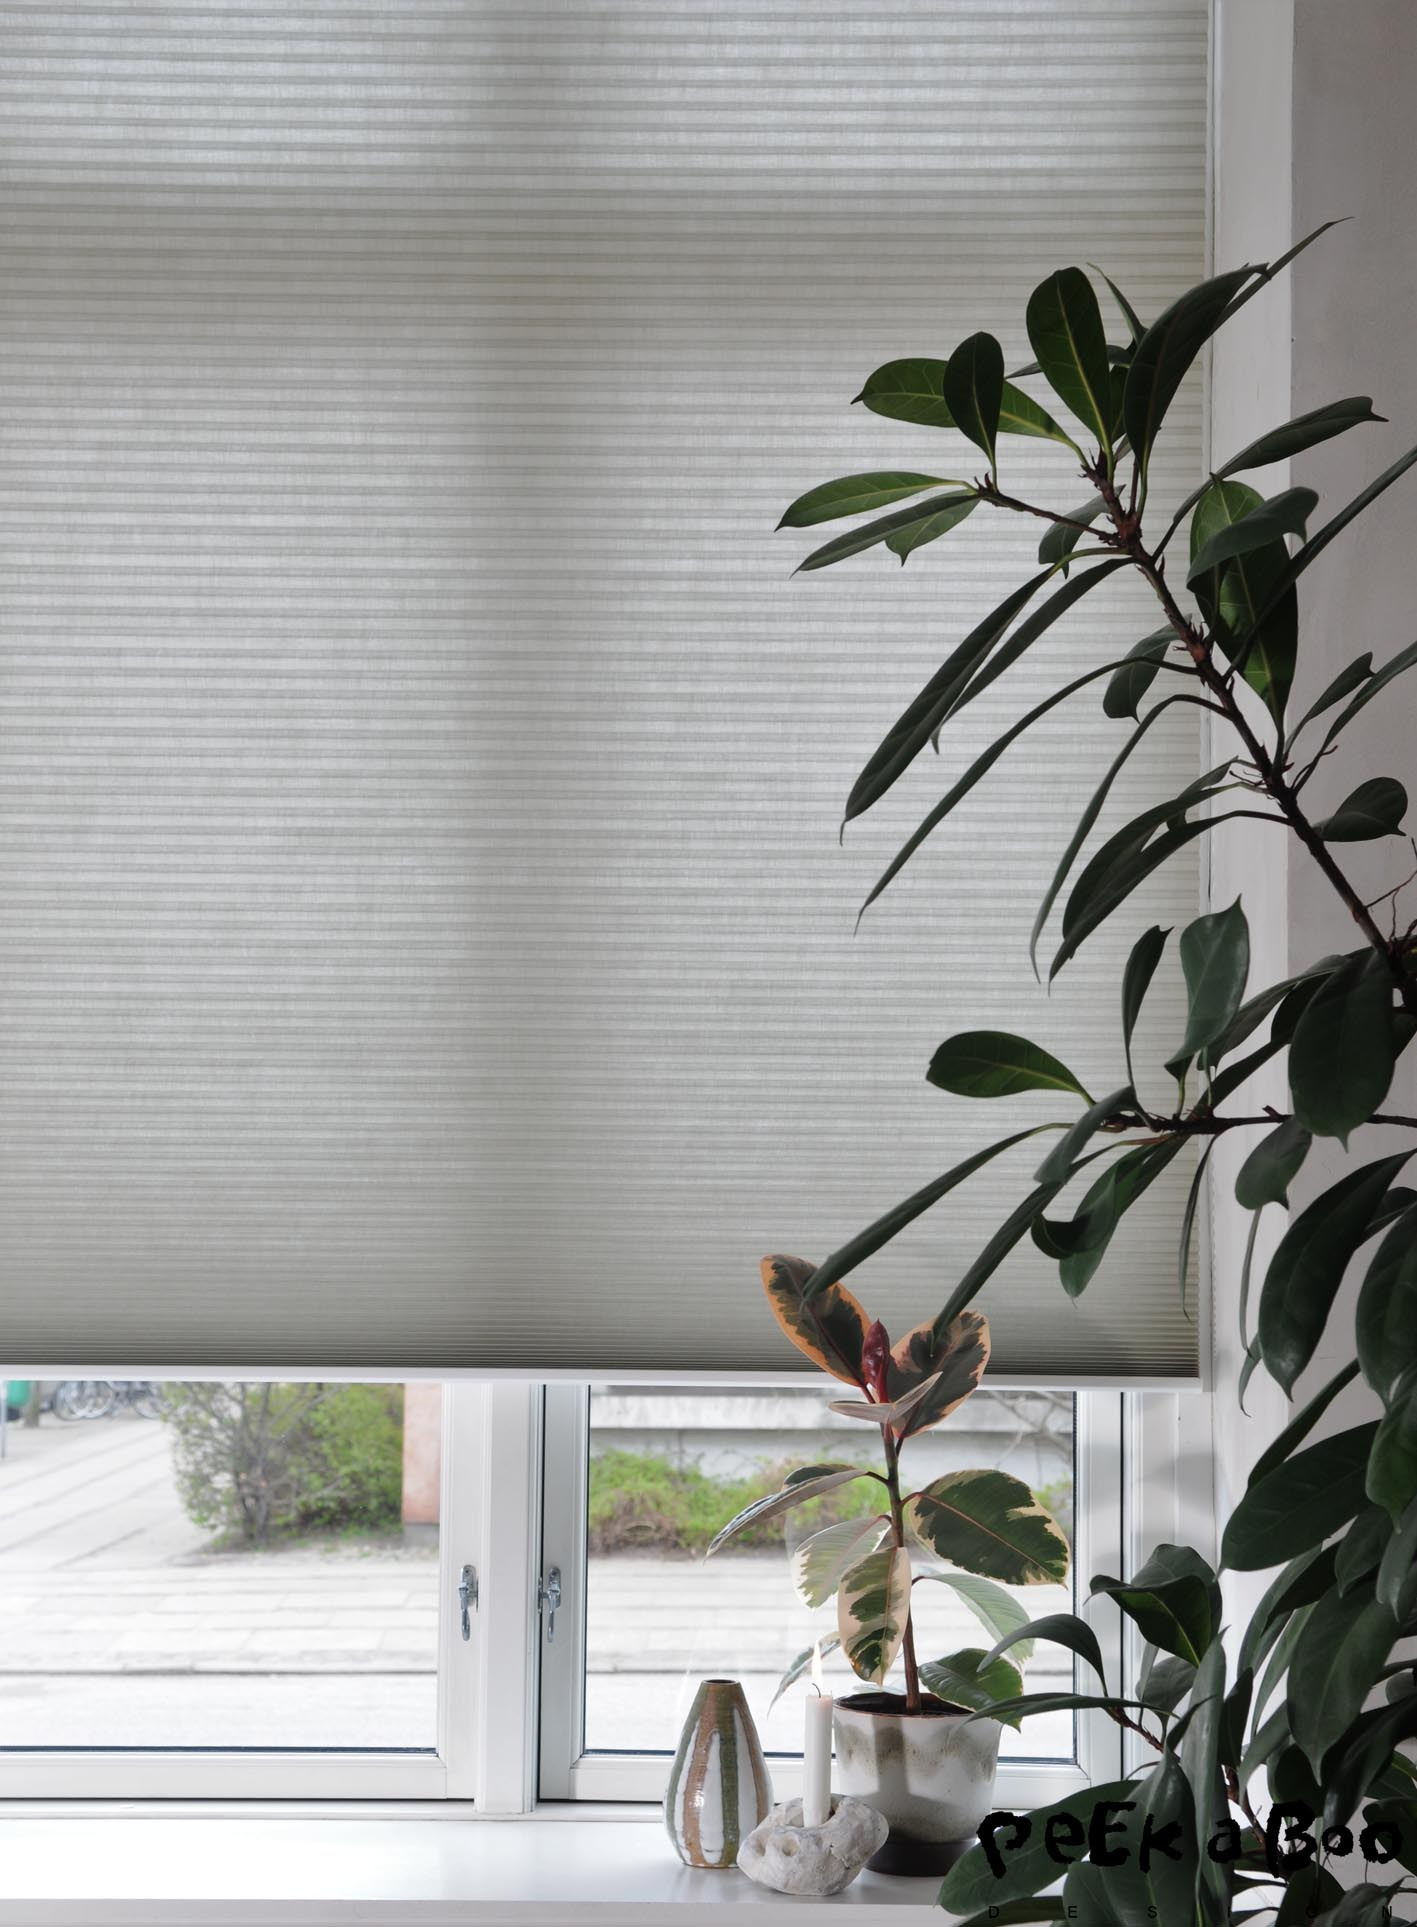 Luxaflex duette blinds with motorized function that can be controled by the Powerview remote or app.